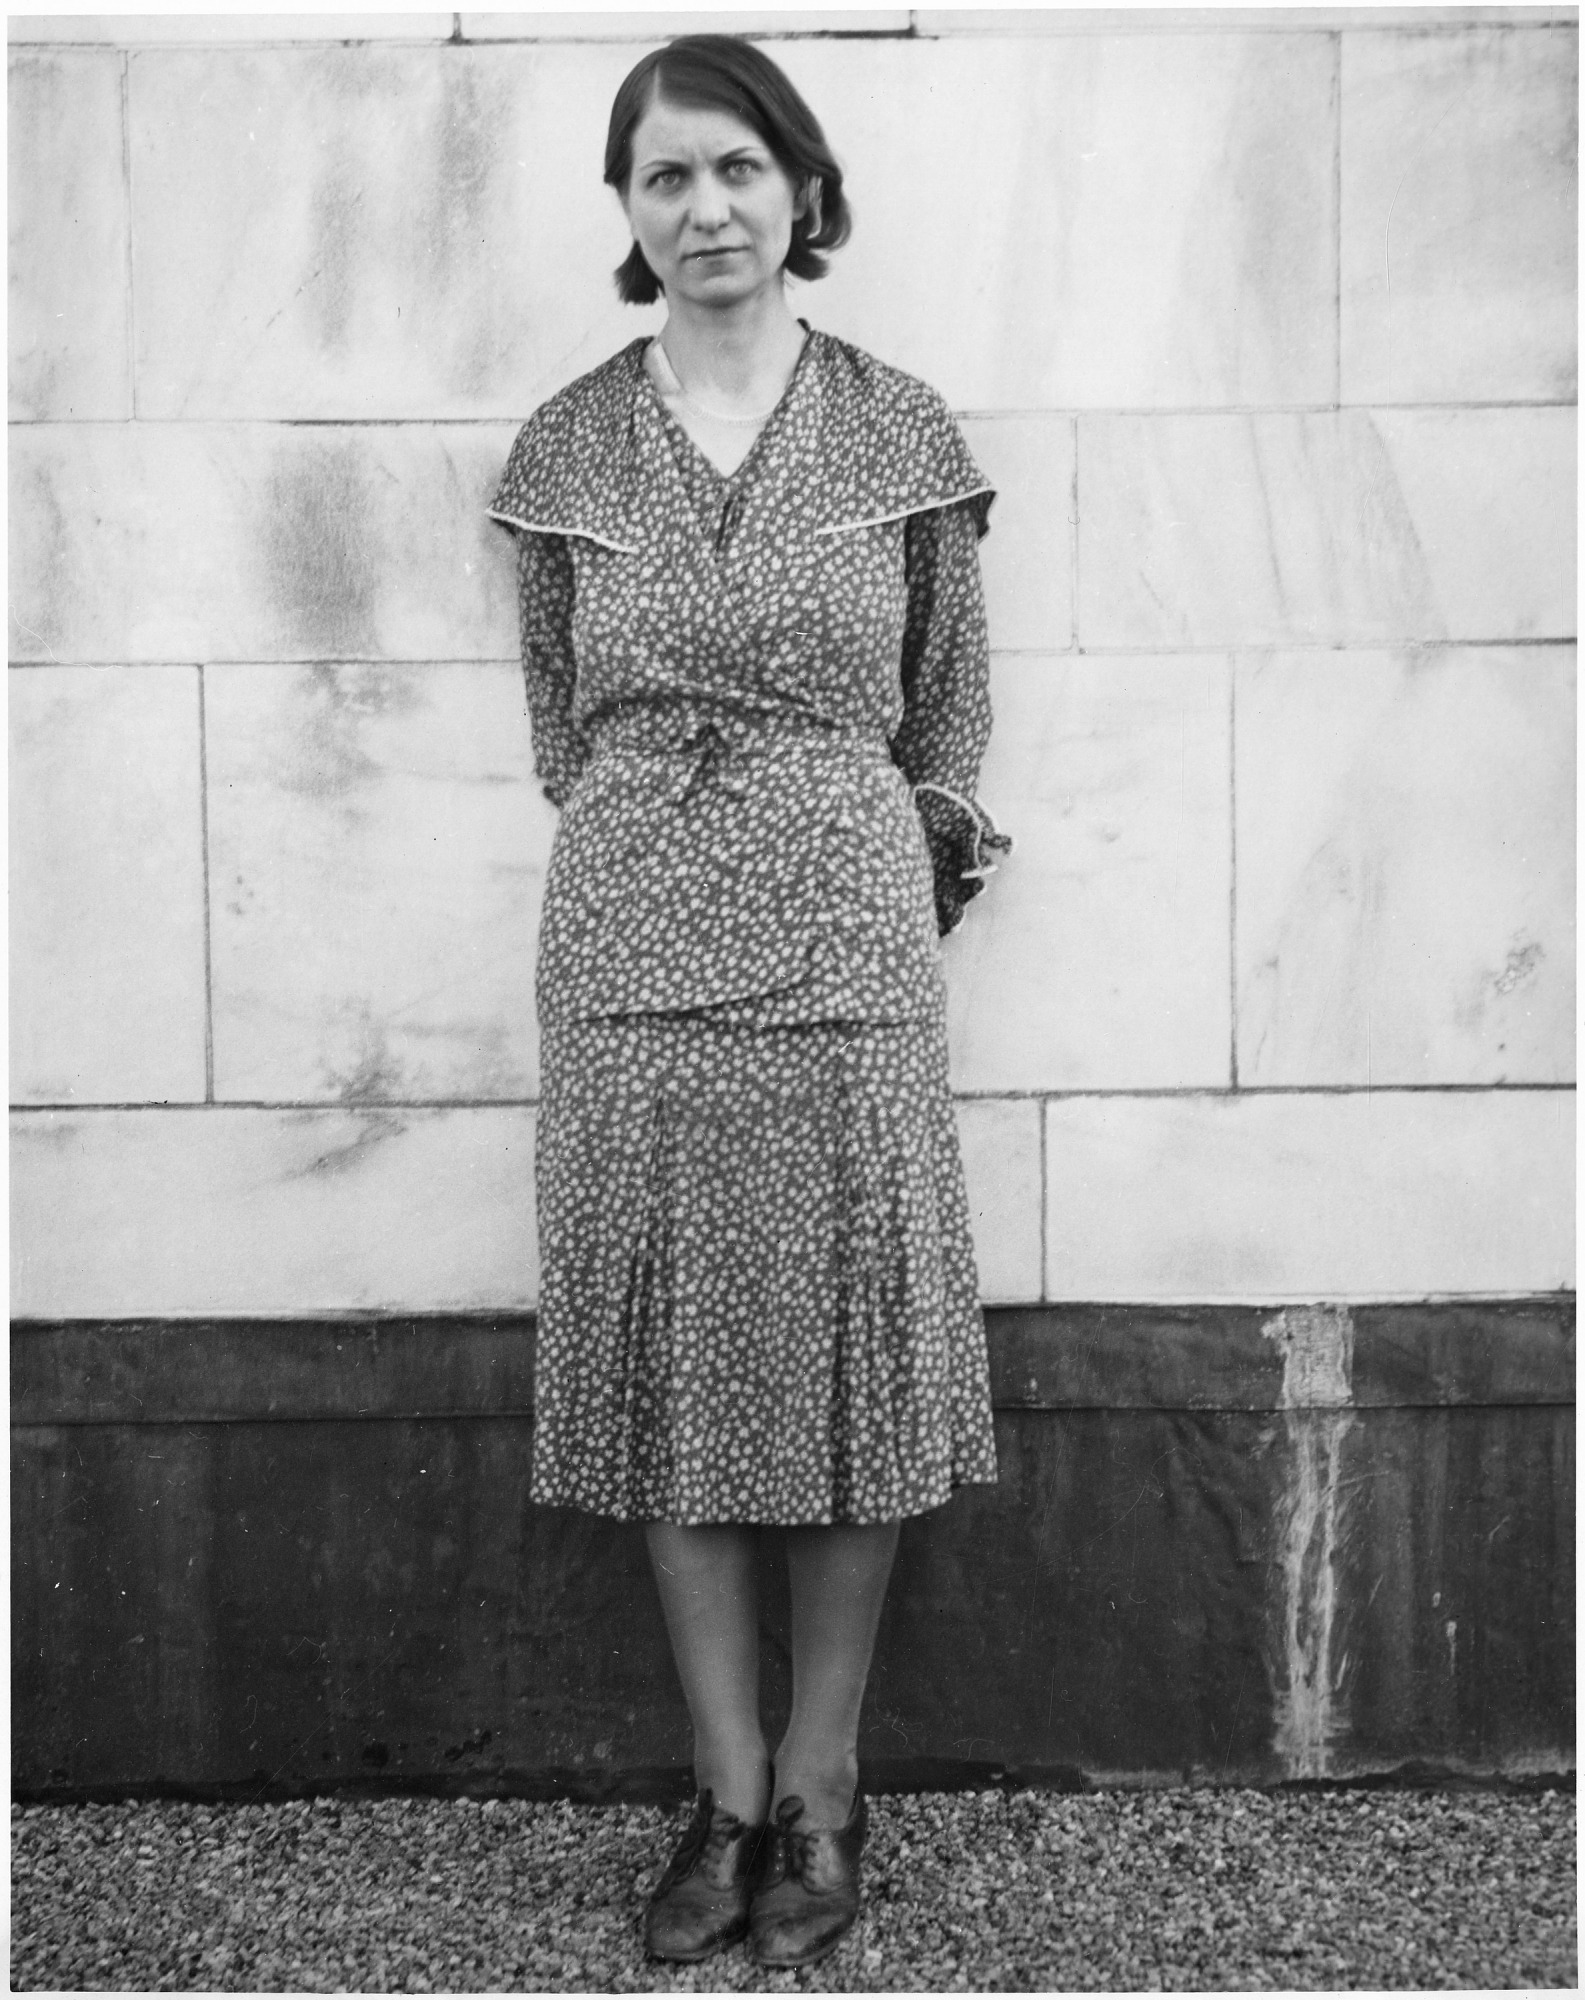 Emma Reh (1896-1982), Smithsonian Institution Archives, SIA Acc. 90-105 [SIA2009-2152].